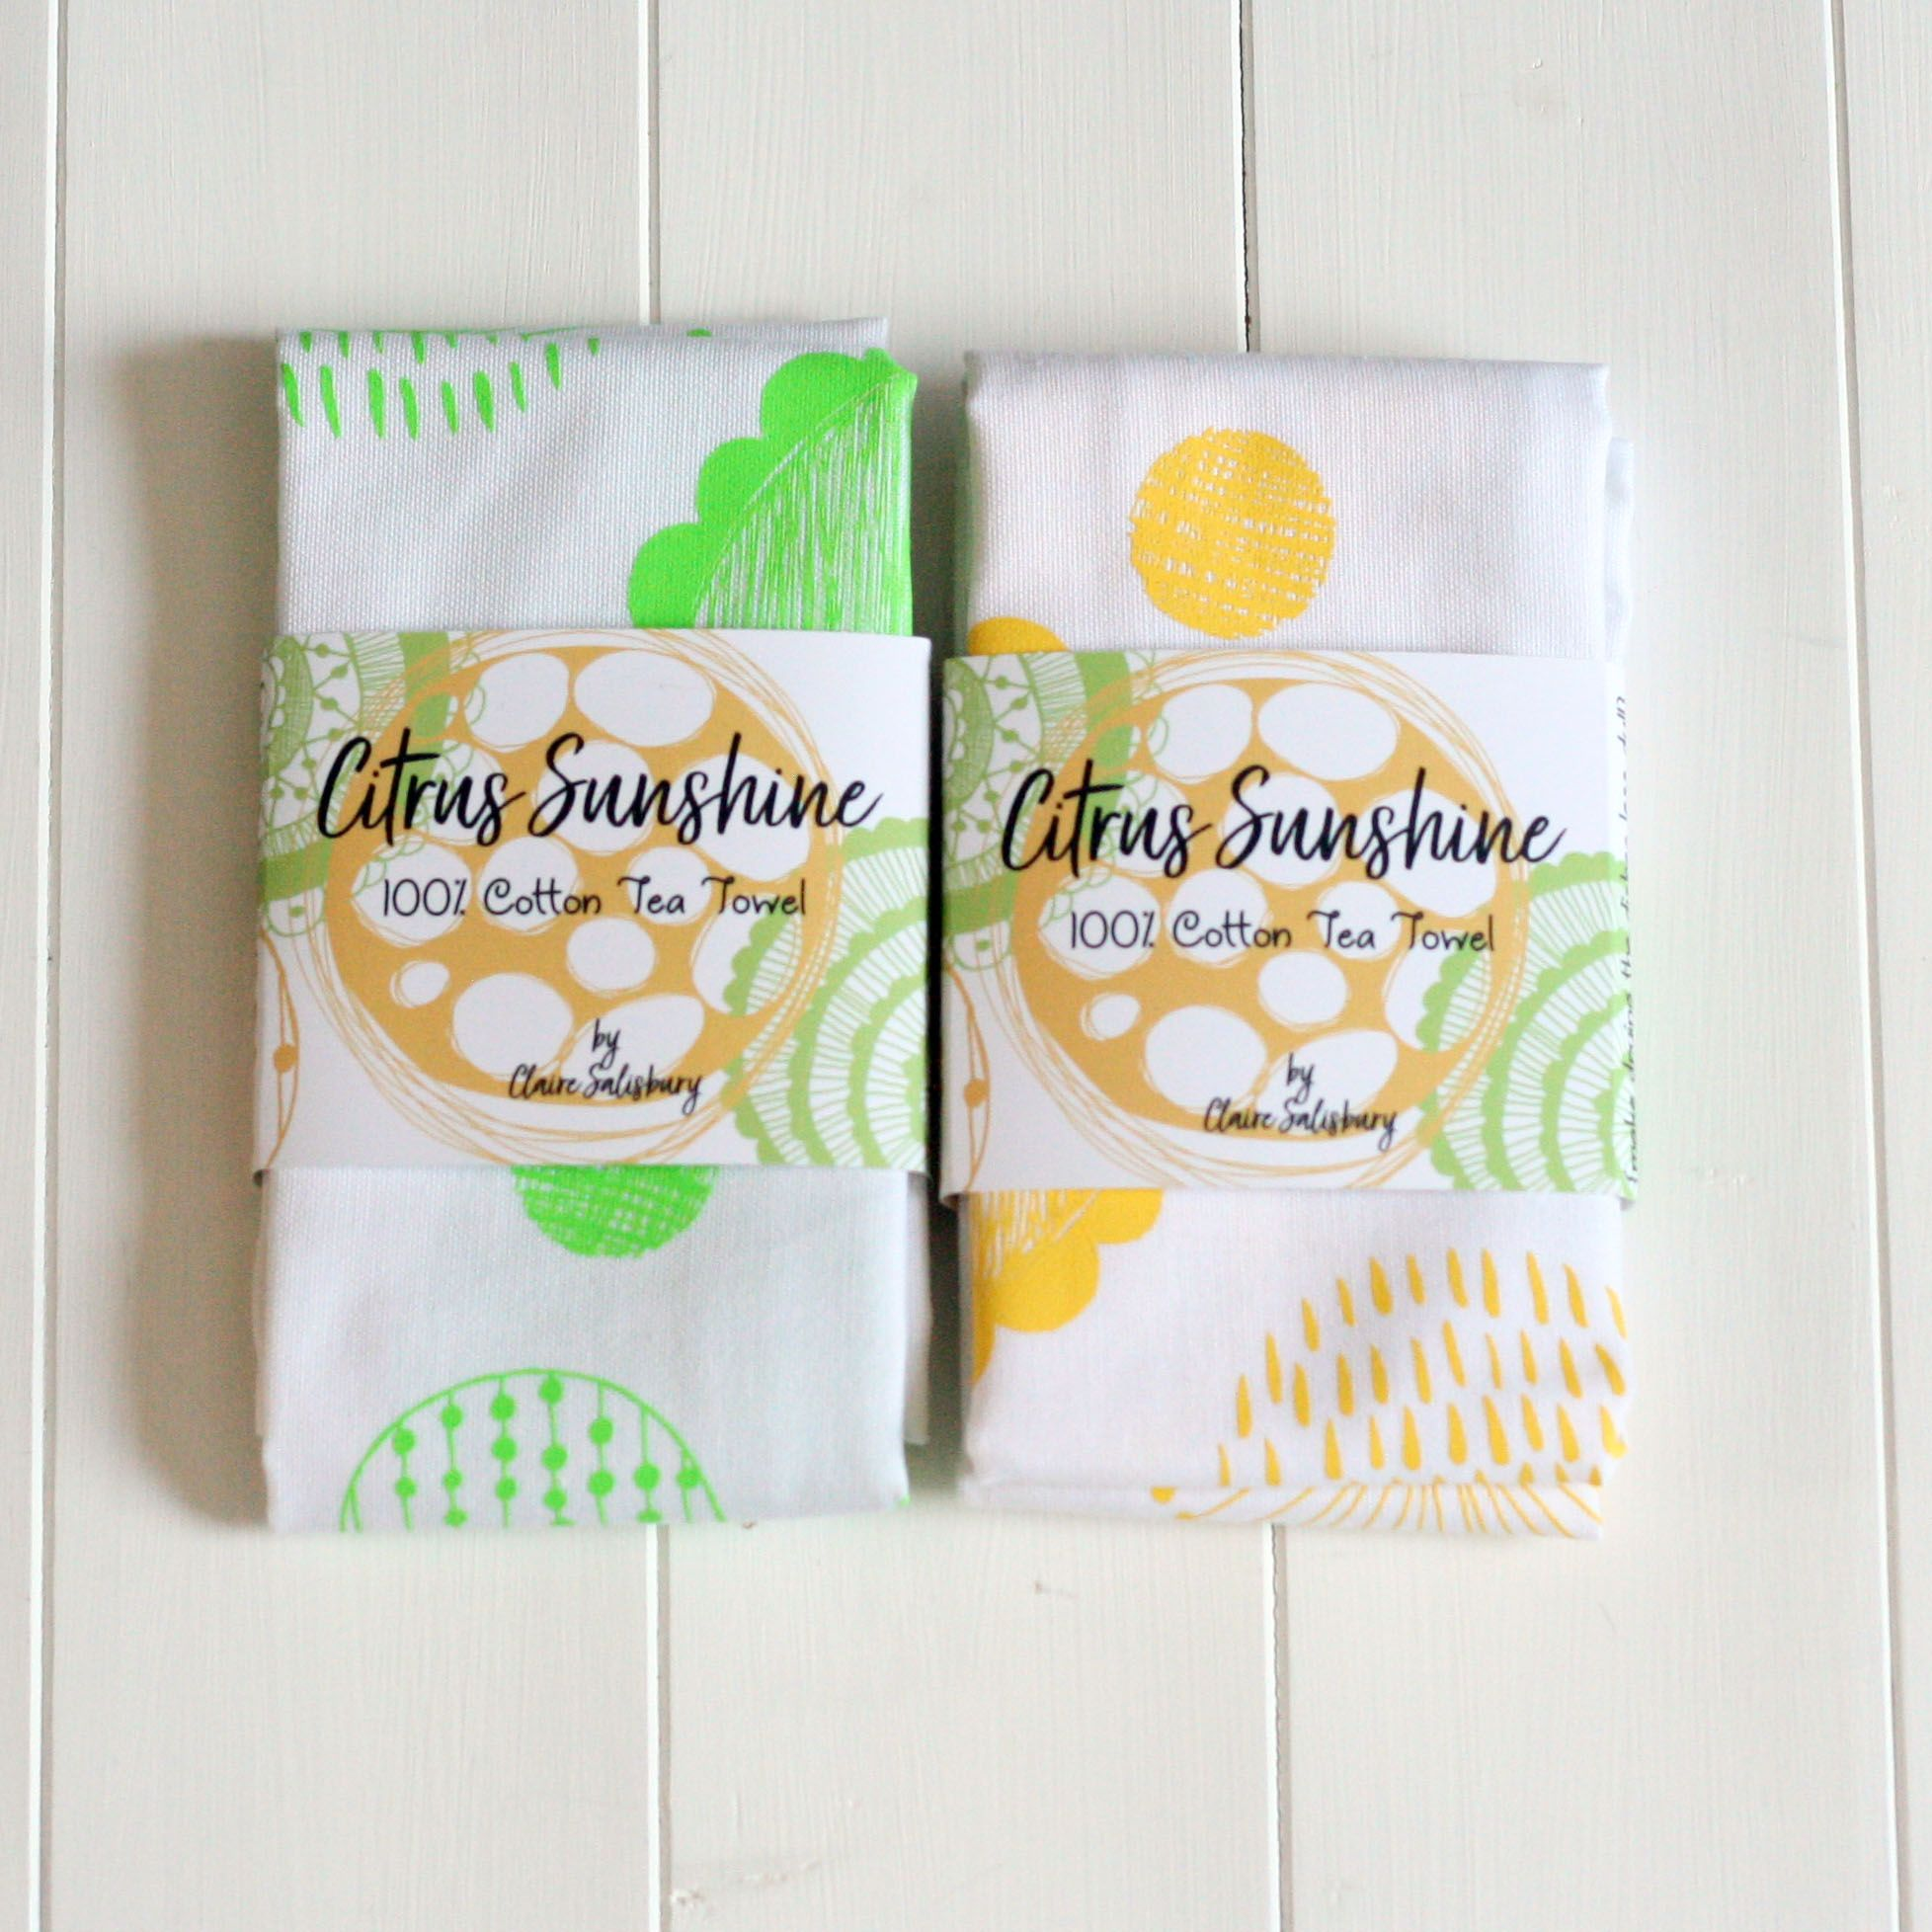 100% COTTON SCREEN PRINTED TEA TOWELS BY CLAIRE SALISBURY STUDIOS